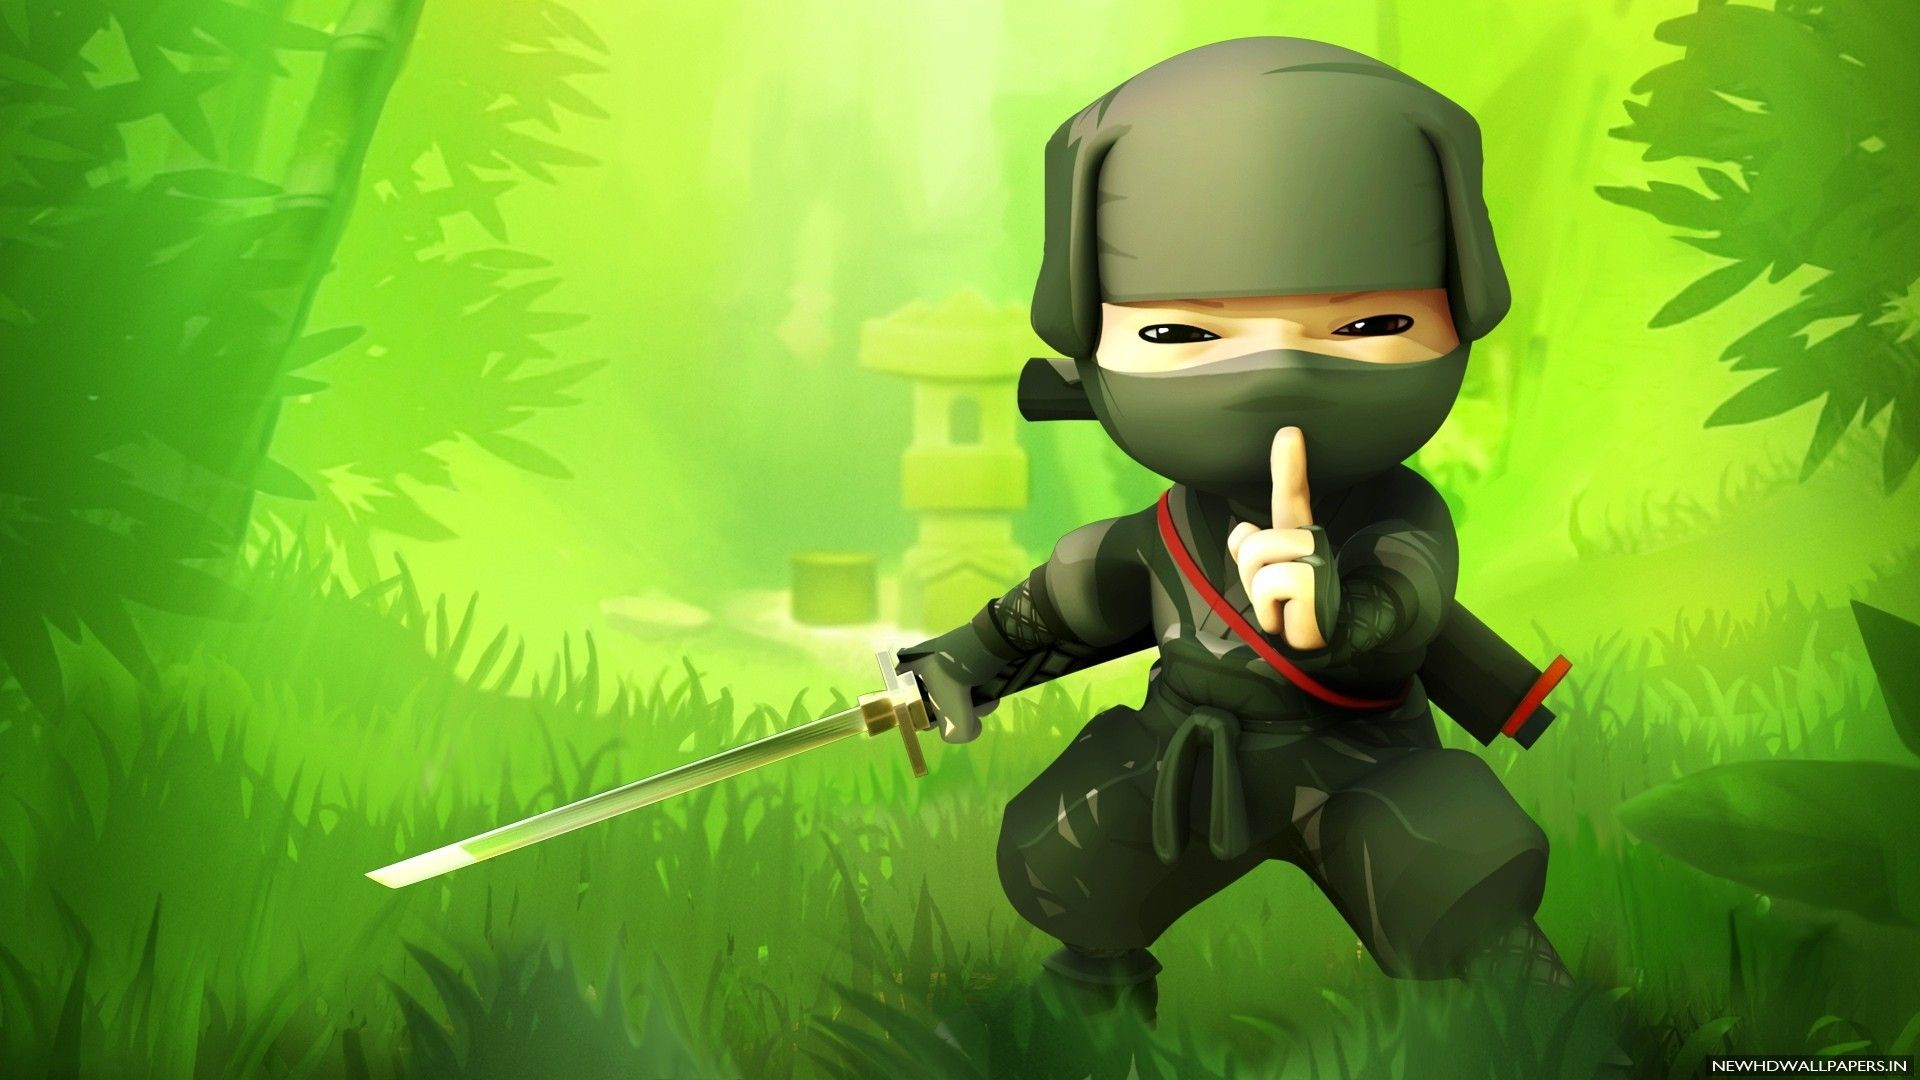 Anime Ninja Wallpaper HD Photos Collections HD